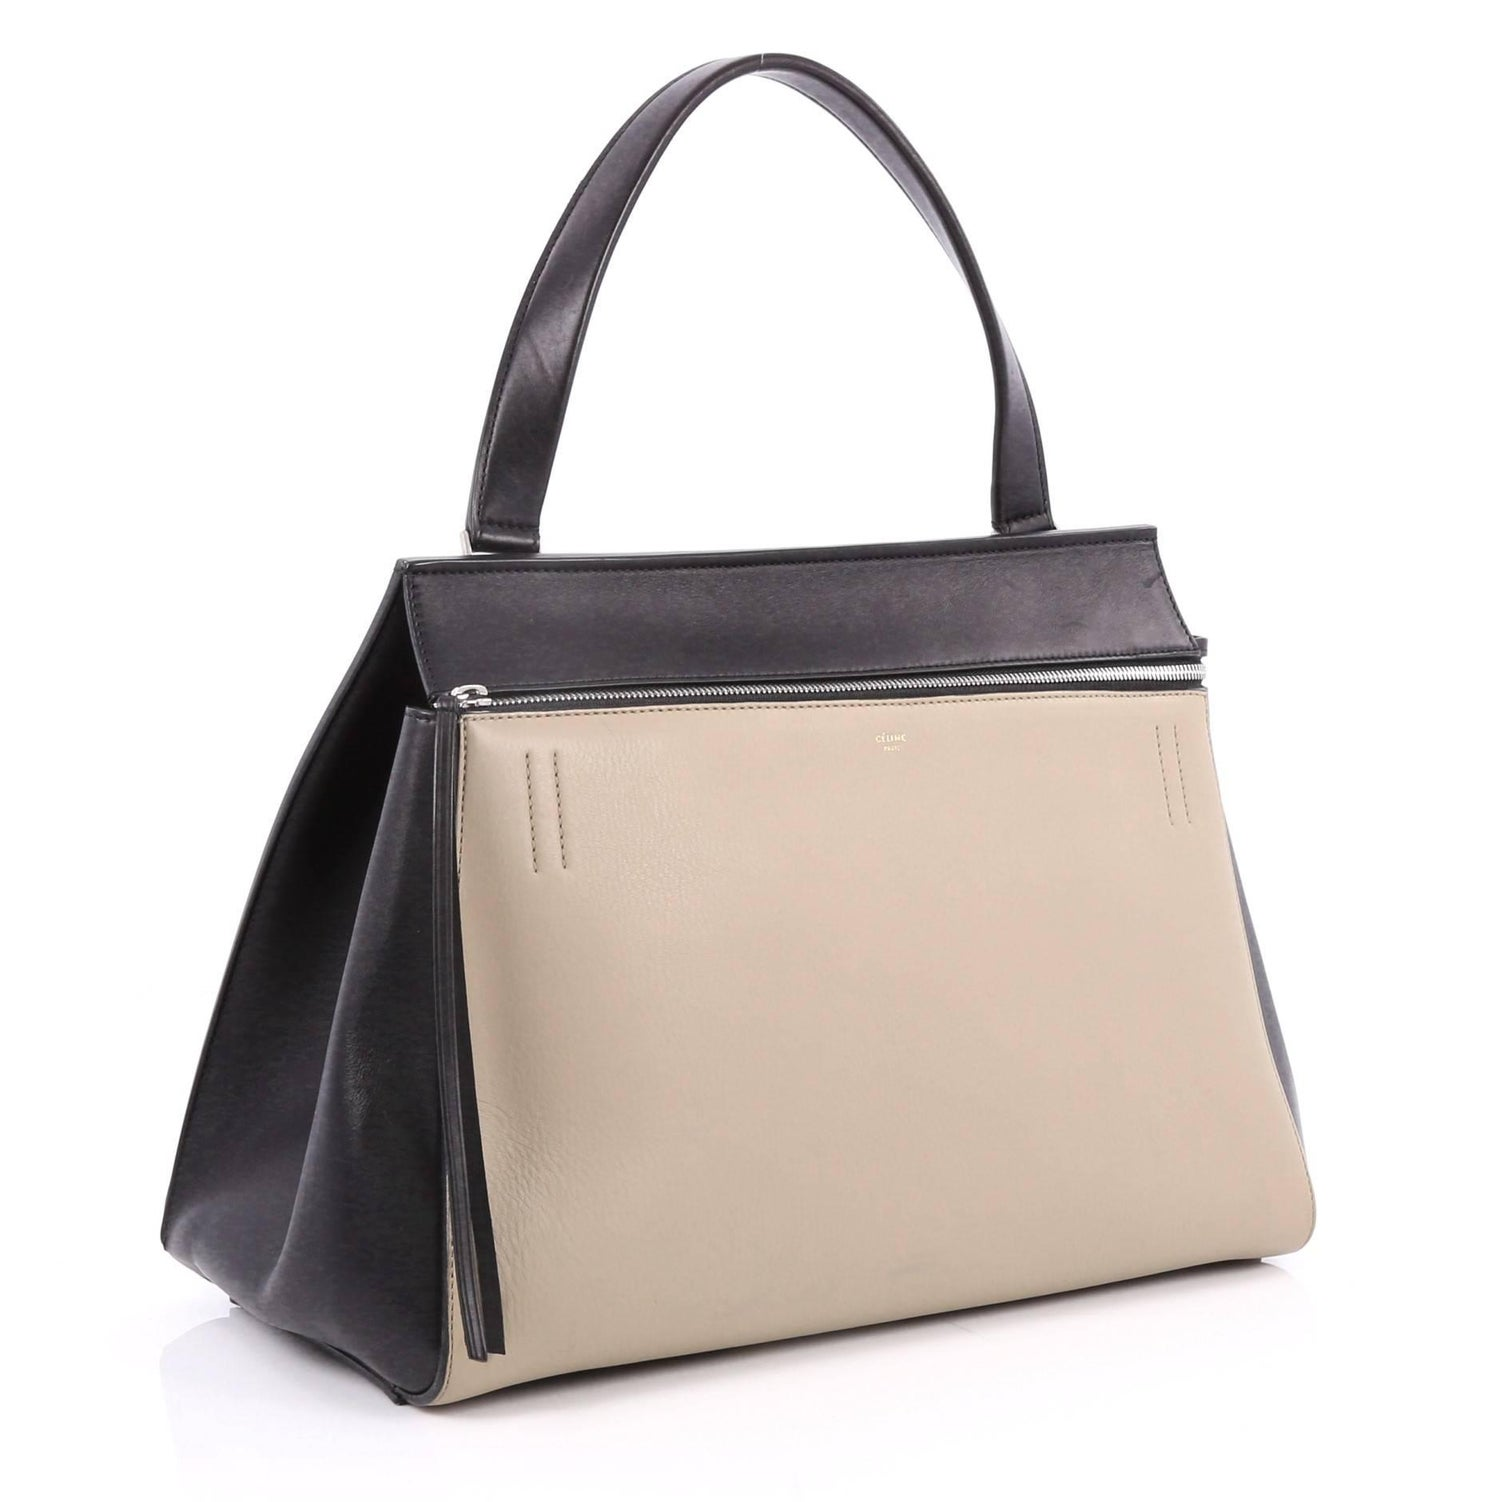 8cc8043acca5 Celine Edge Bag Leather Large is the quintessential